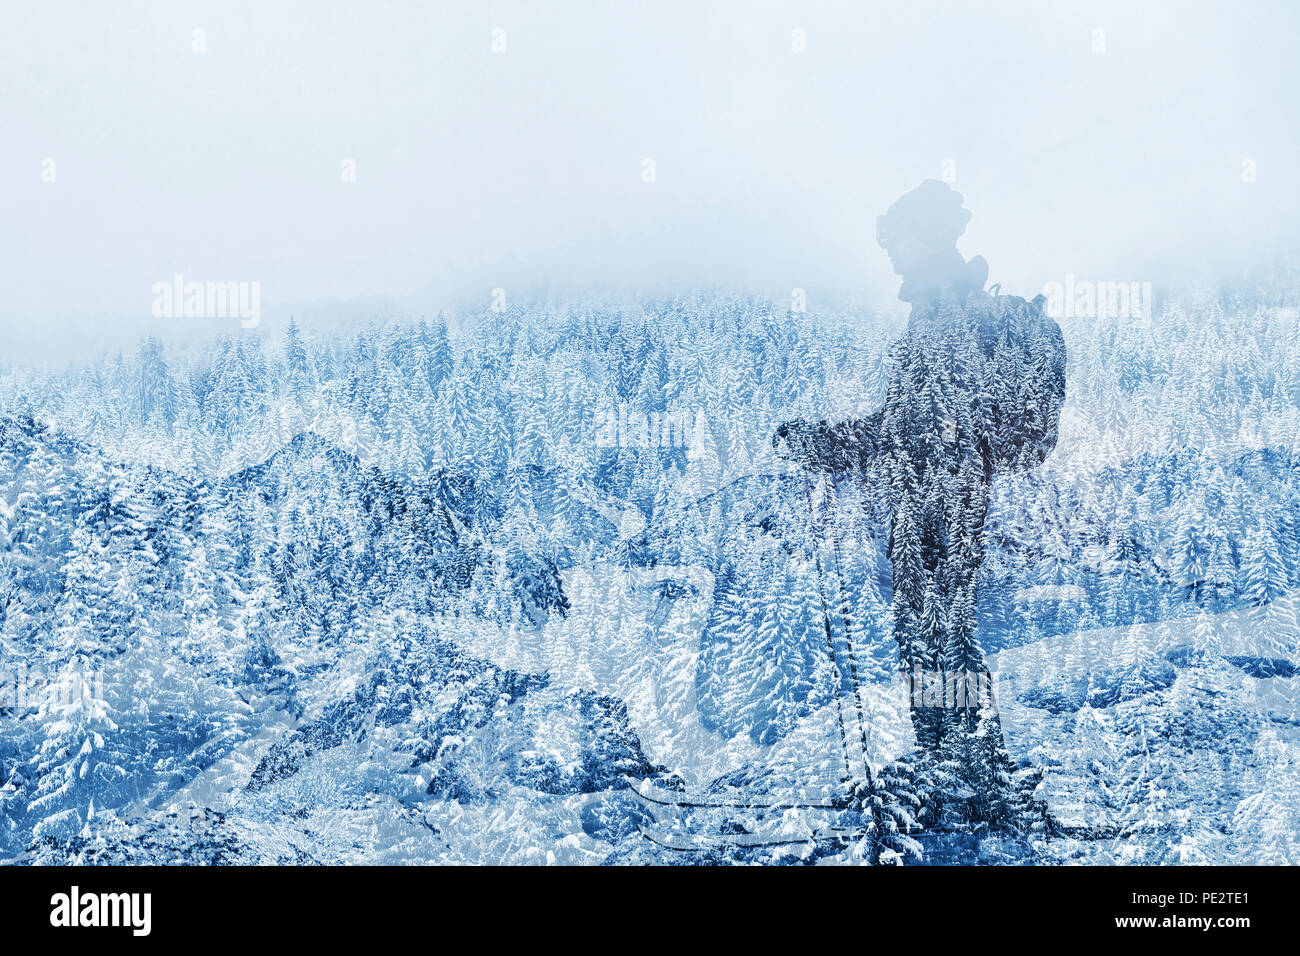 double exposure of skier in beautiful mountain landscape, skiing background, winter holidays outdoors activity - Stock Image